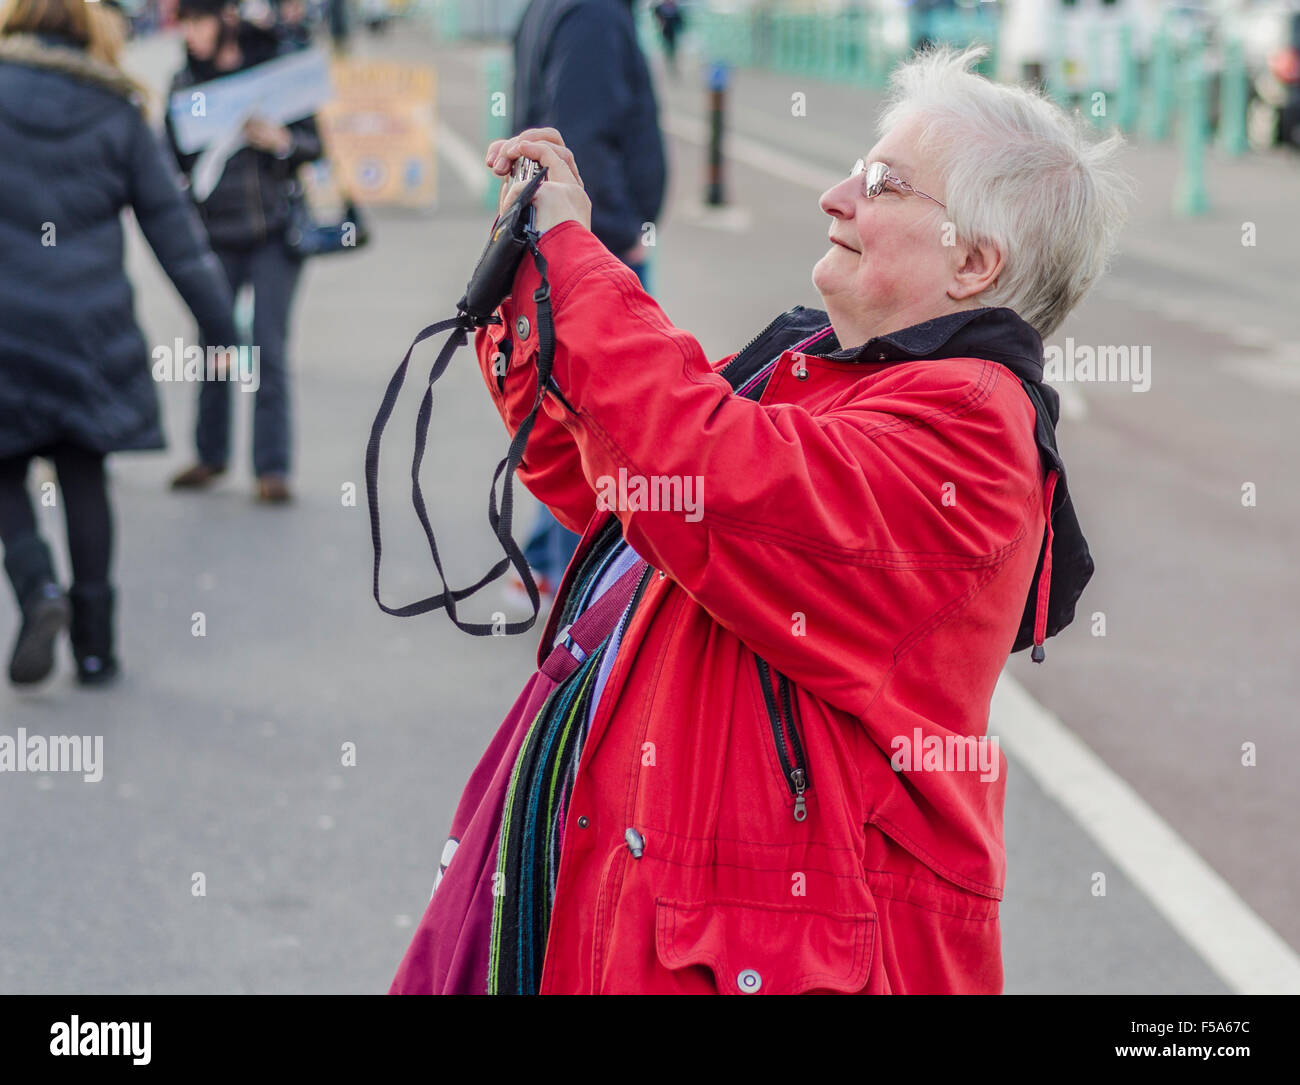 Senior lady taking photos with a compact camera. - Stock Image